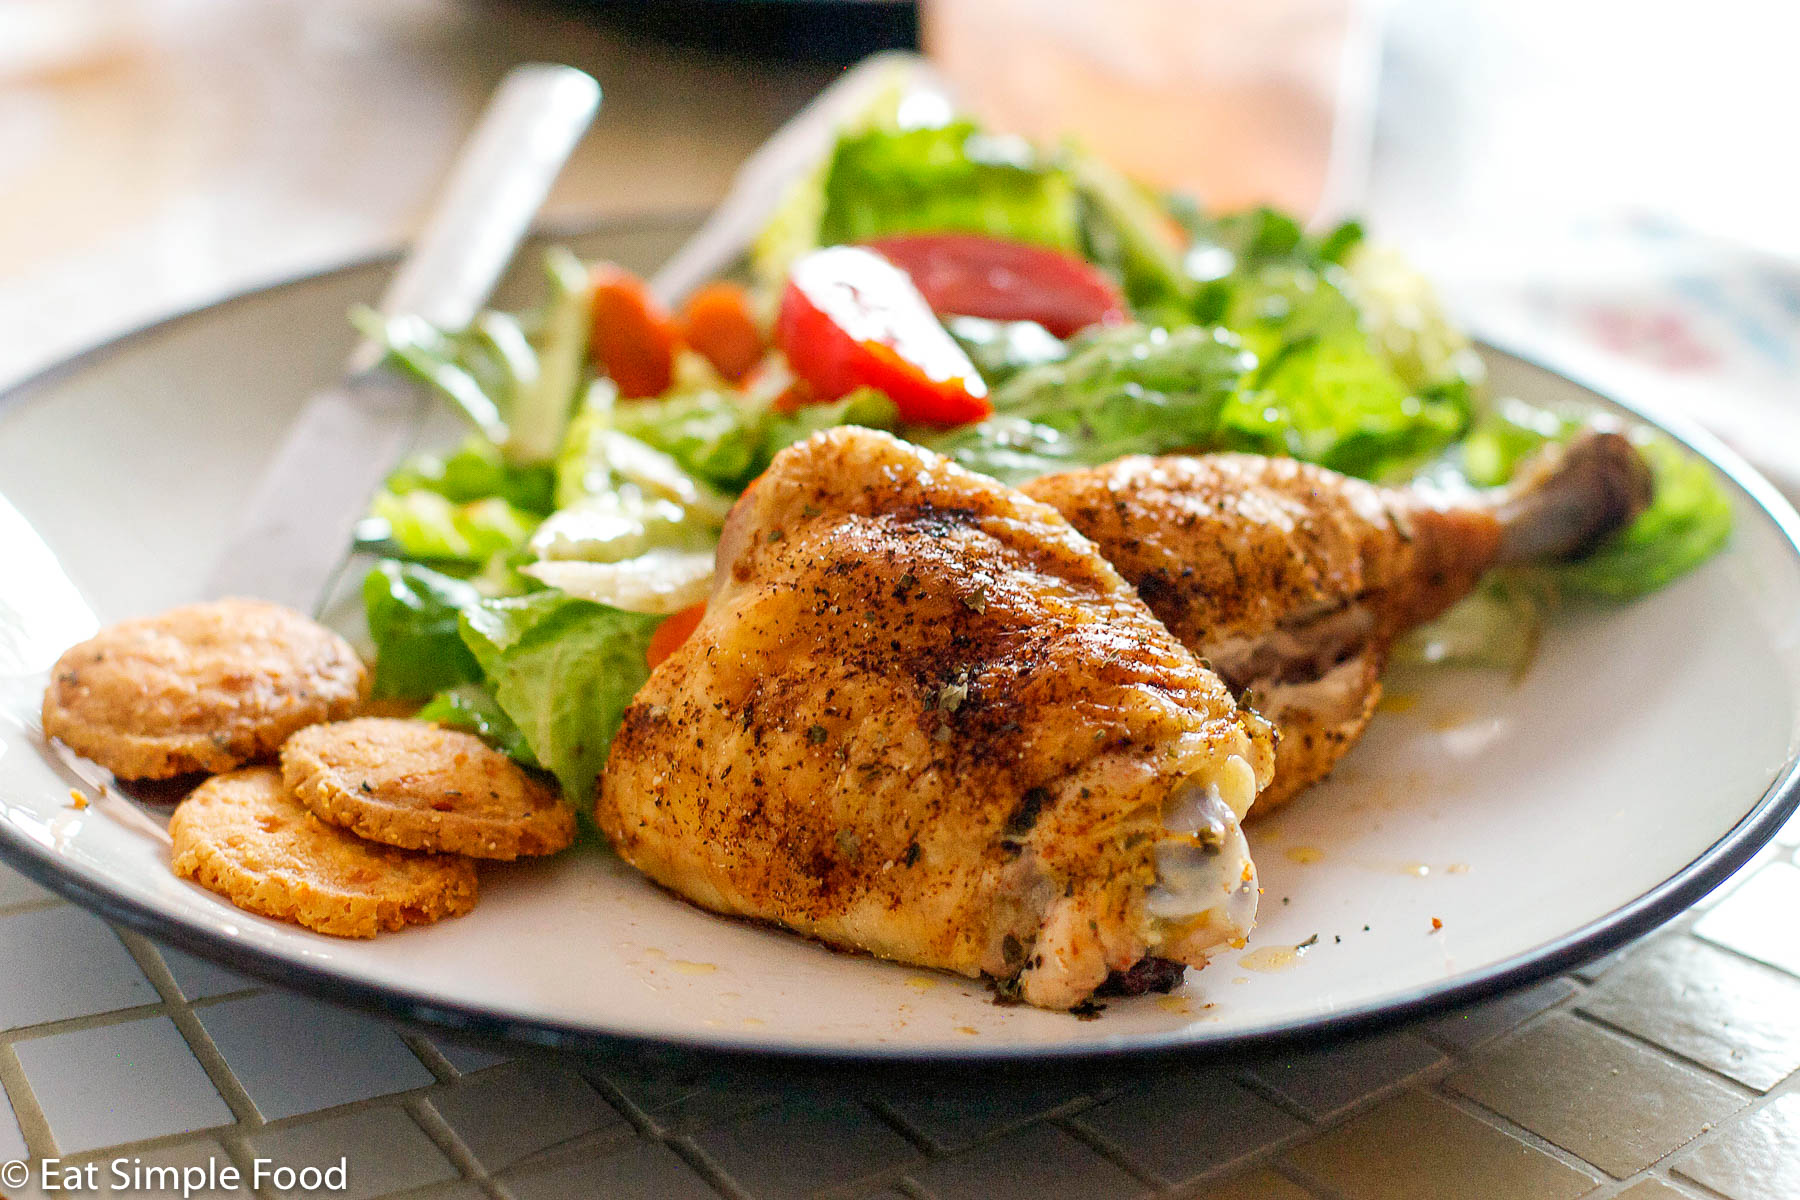 Cooked Chicken Thigh and Leg with A Brown Dry Rub On A white plate with a green salad and red tomato salad.